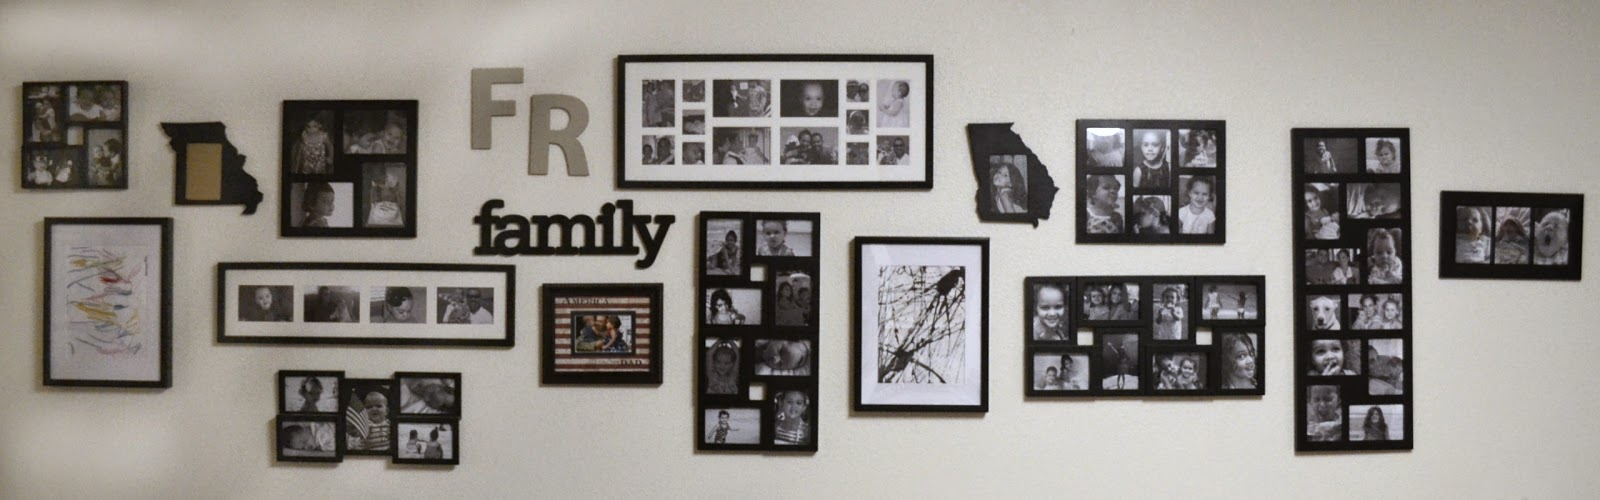 Munchkins and the Military: The Family Gallery Wall